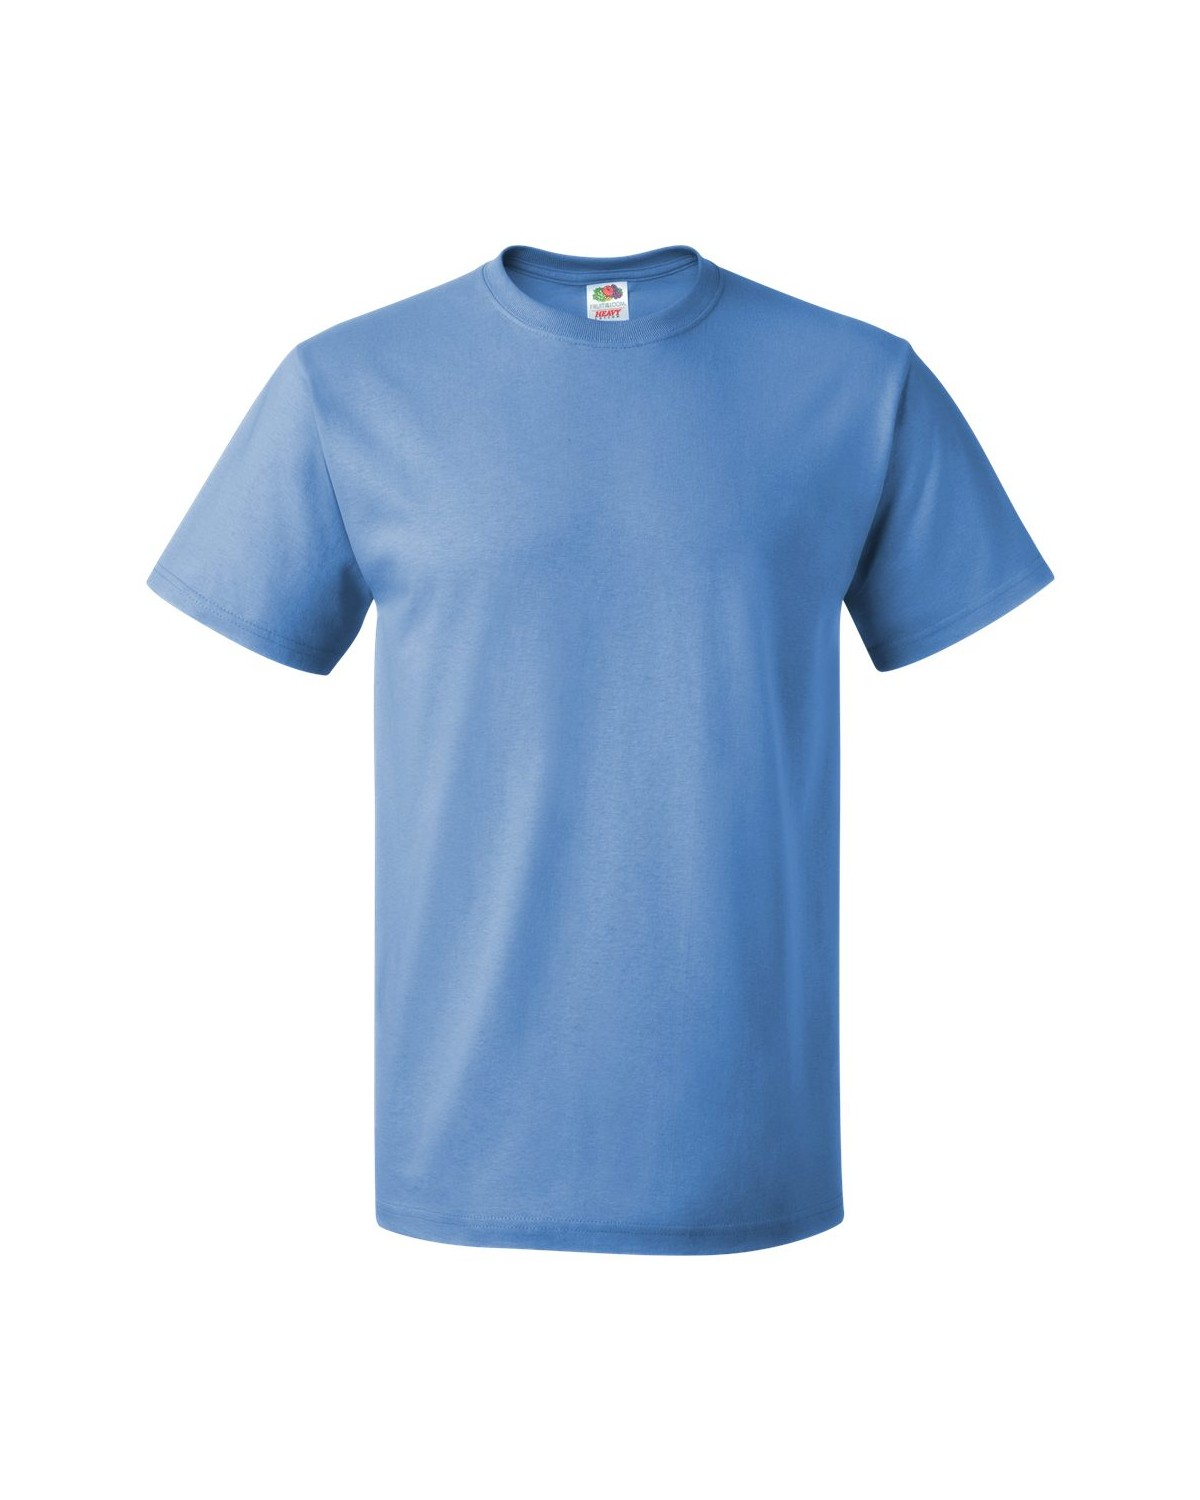 3930R Fruit of the Loom COLUMBIA BLUE